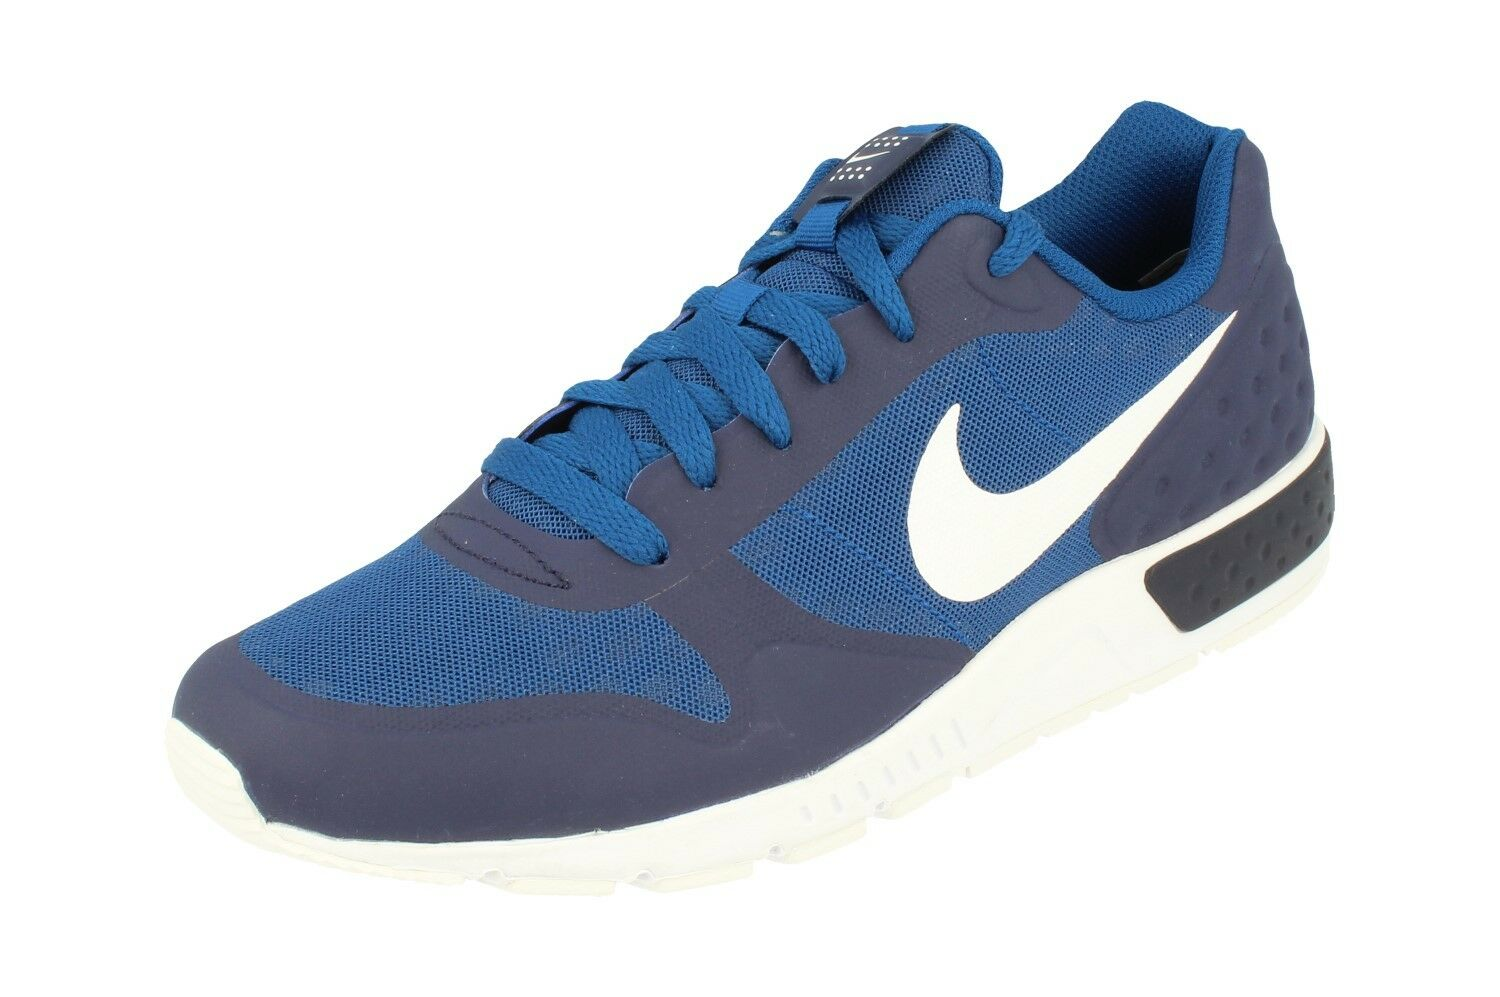 Nike Nightgazer Lw Se Homme FonctionneHommest paniers 902818 paniers Chaussures 402